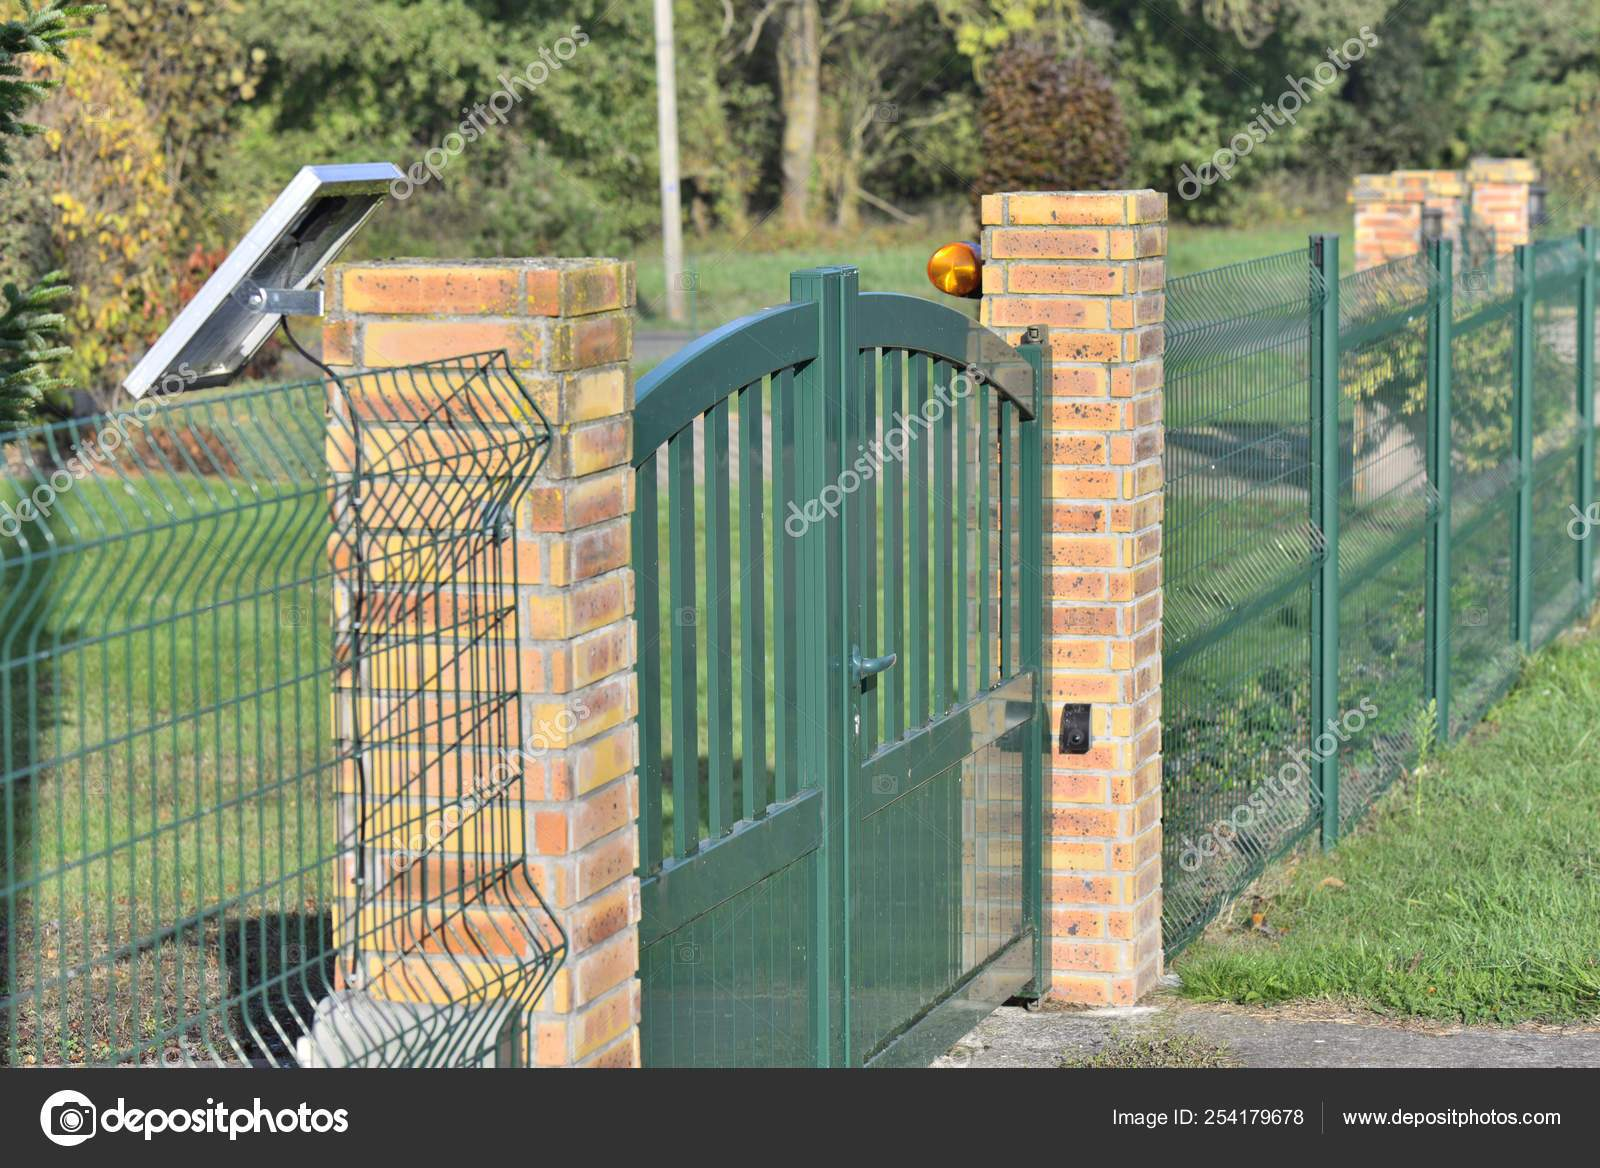 depositphotos stock photo fence with a green electric